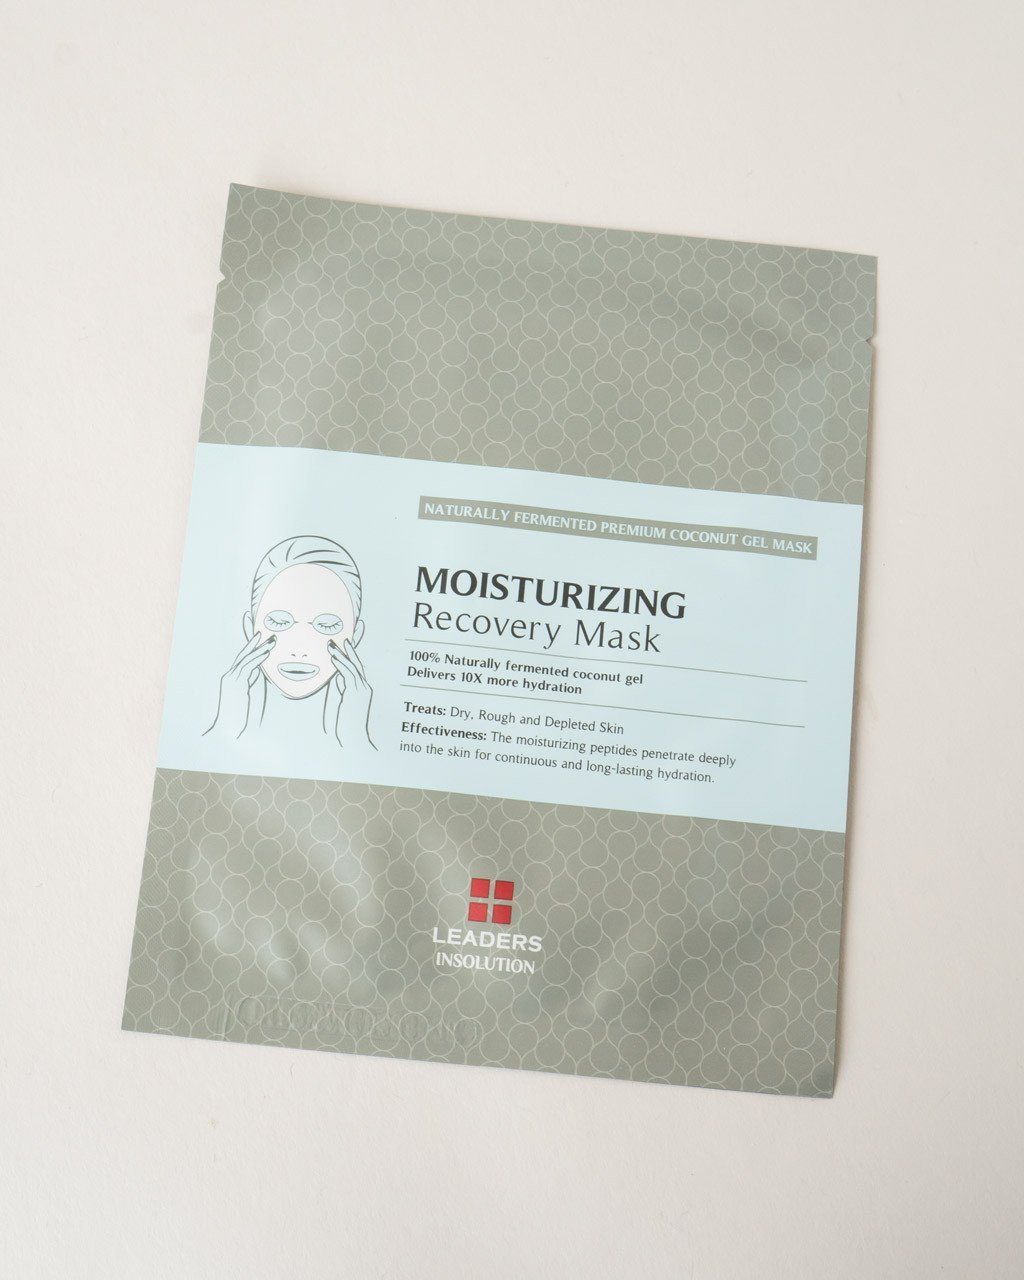 Moisturizing Recovery Mask Packaging